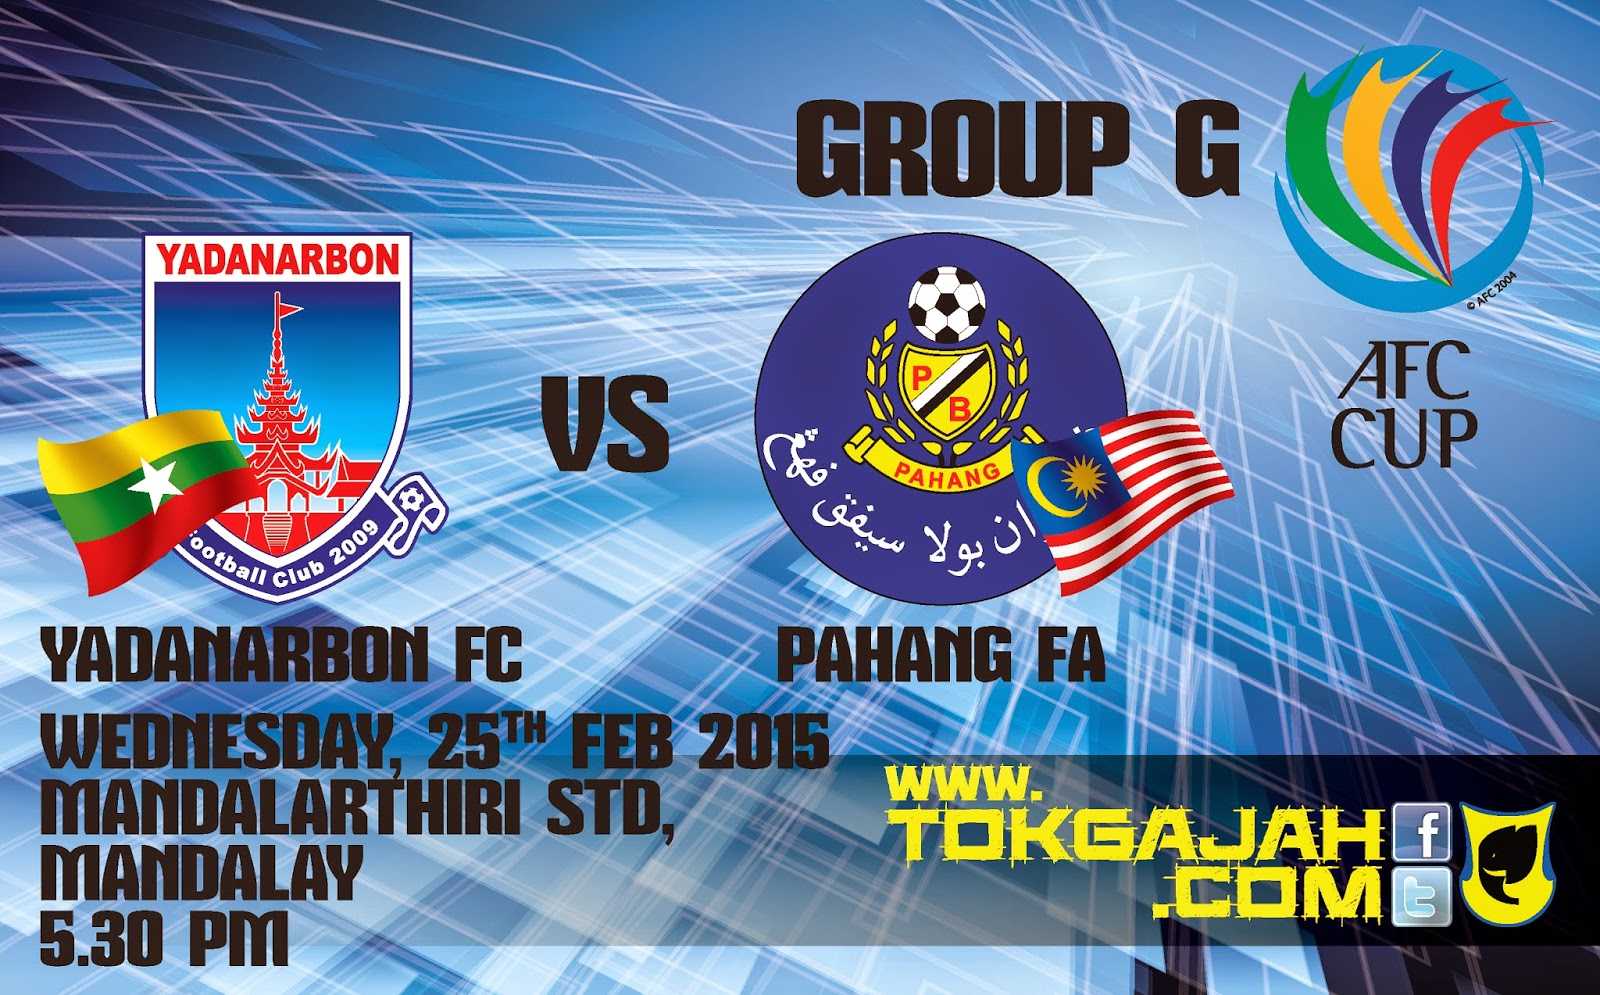 Pahang Vs Yadanarbon AFC Cup 25 Feb 2015 530 PM